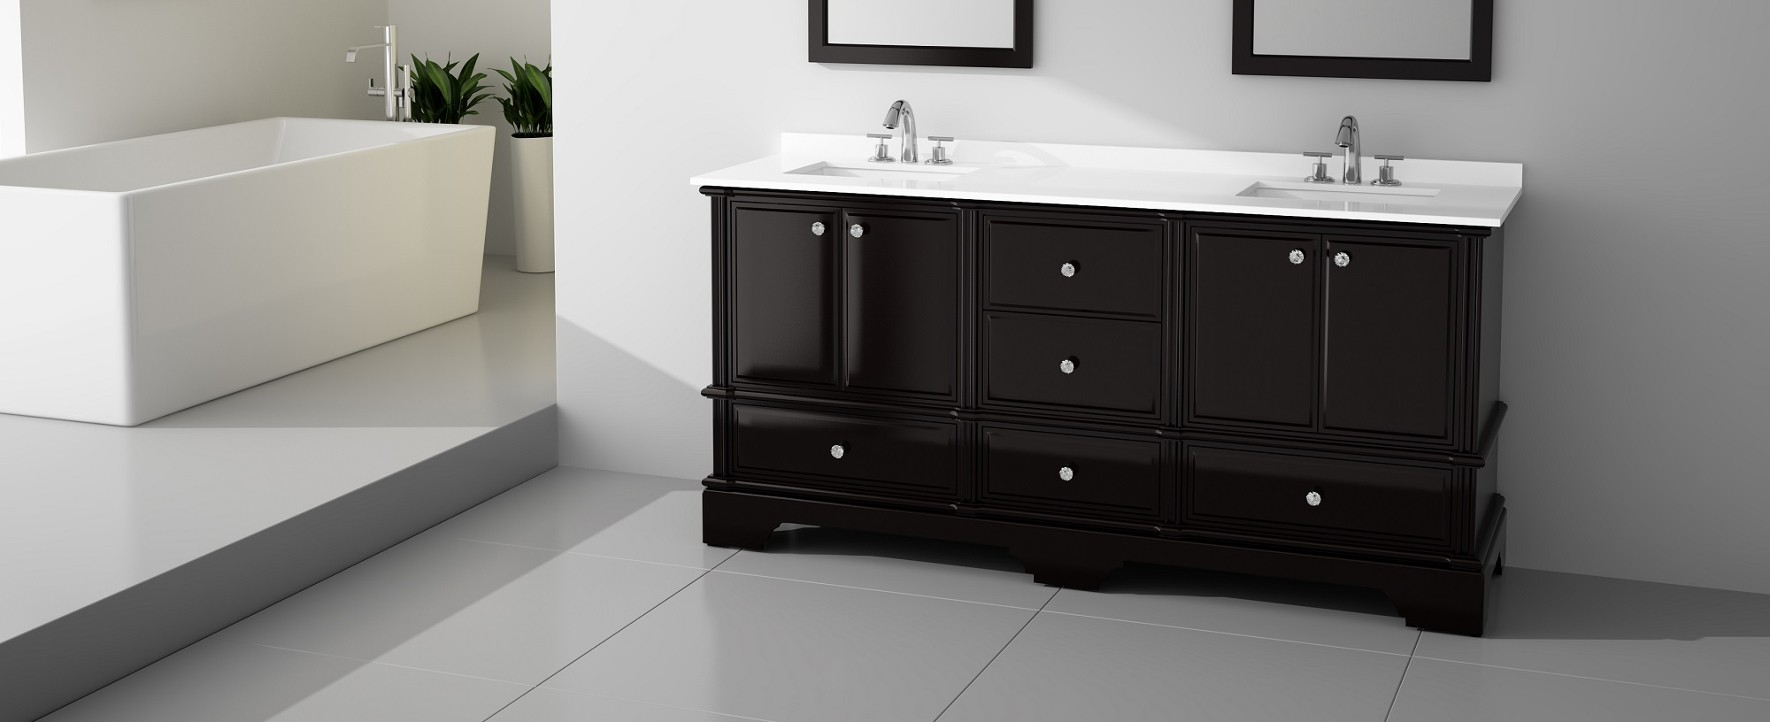 Captivating 40 Luxury Bathroom Vanities Toronto Decorating Design Of Godi Bathroom High End